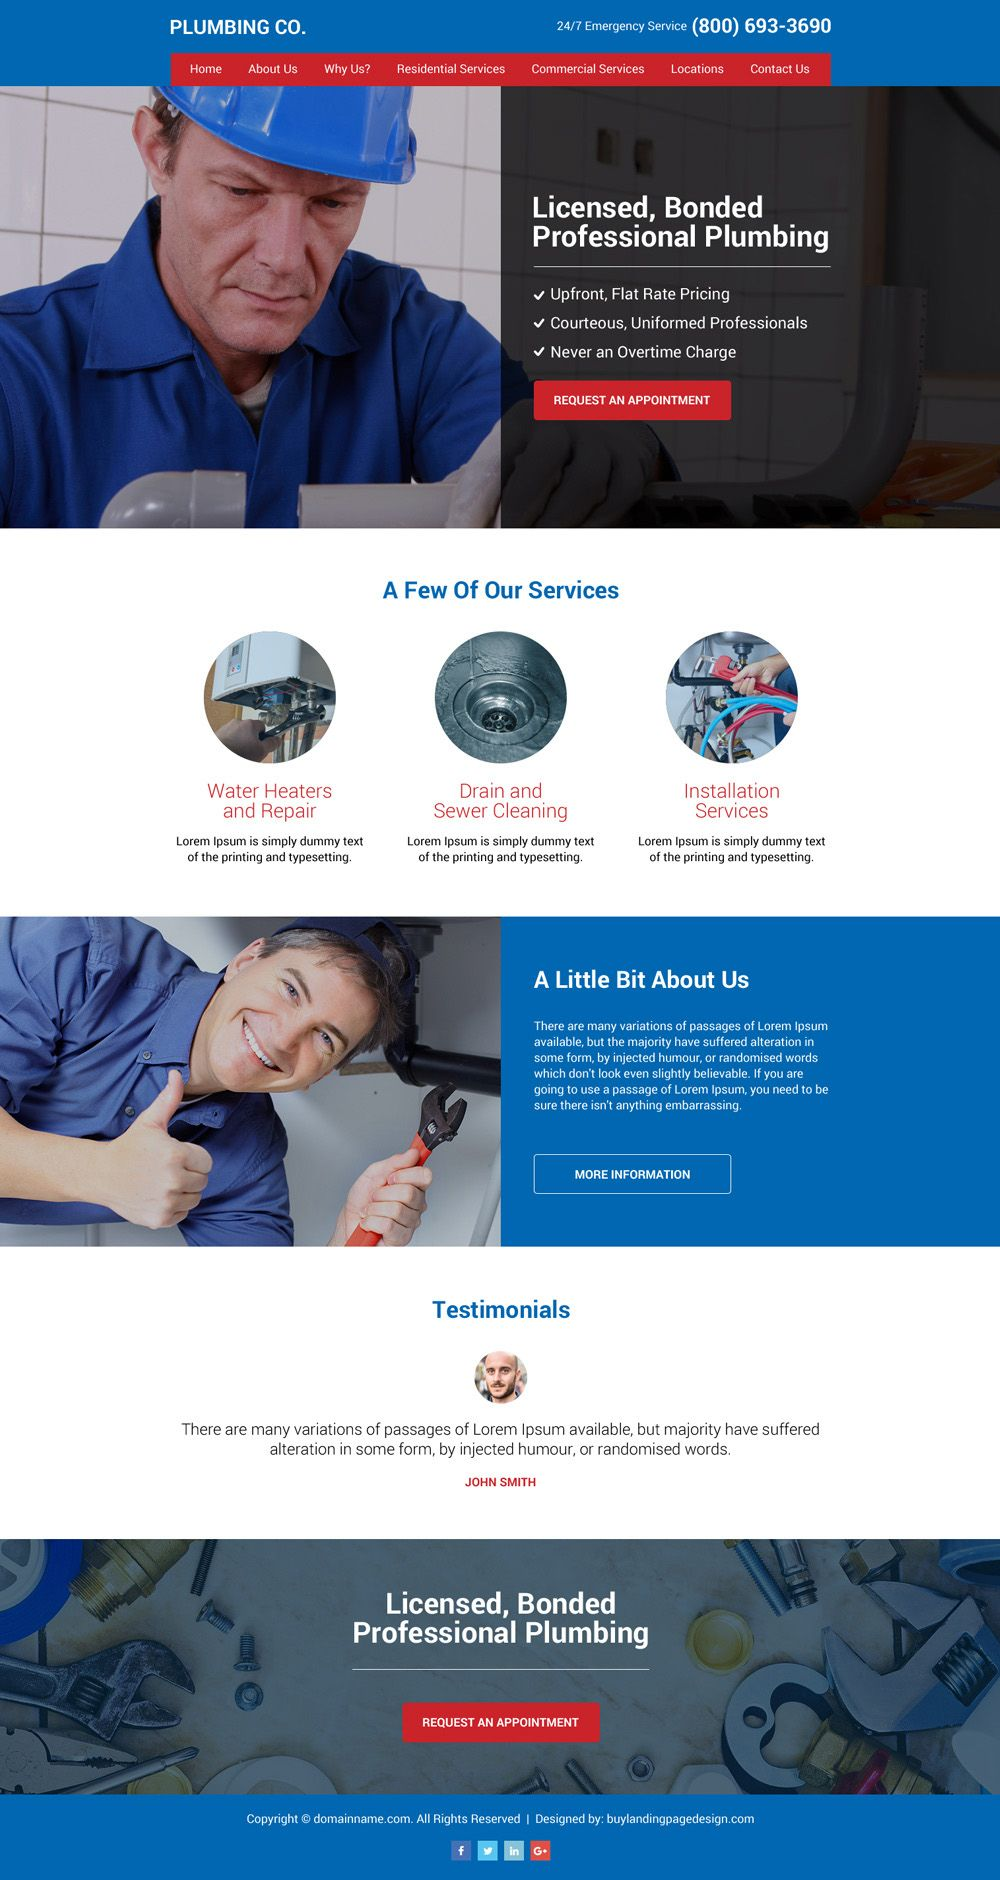 Plumbing Services Professional And Clean Website Design Website Design Plumbing Companies Web Design